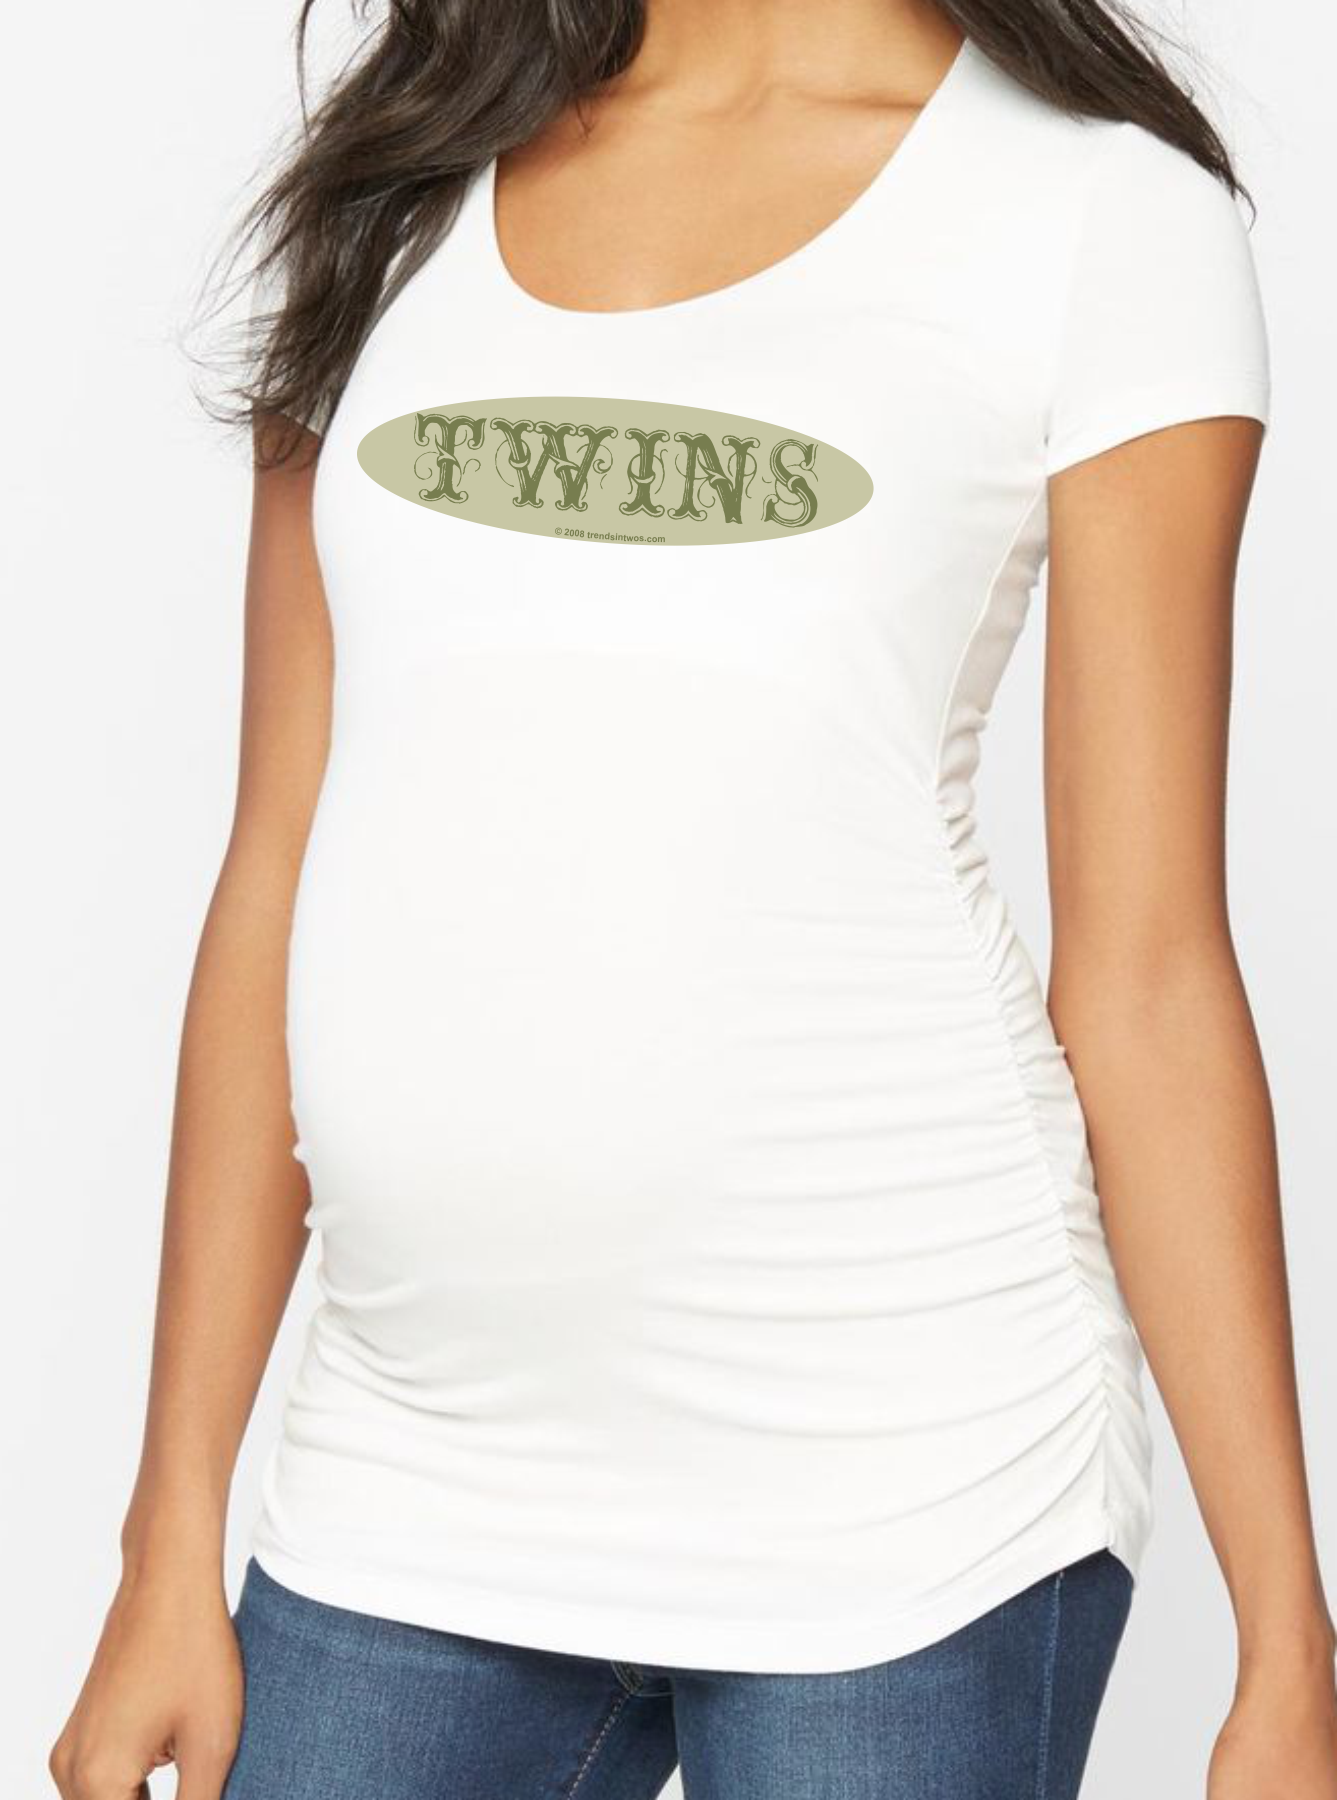 Twin Belly Pictures From 0 to 12 Weeks Pregnant With Twins